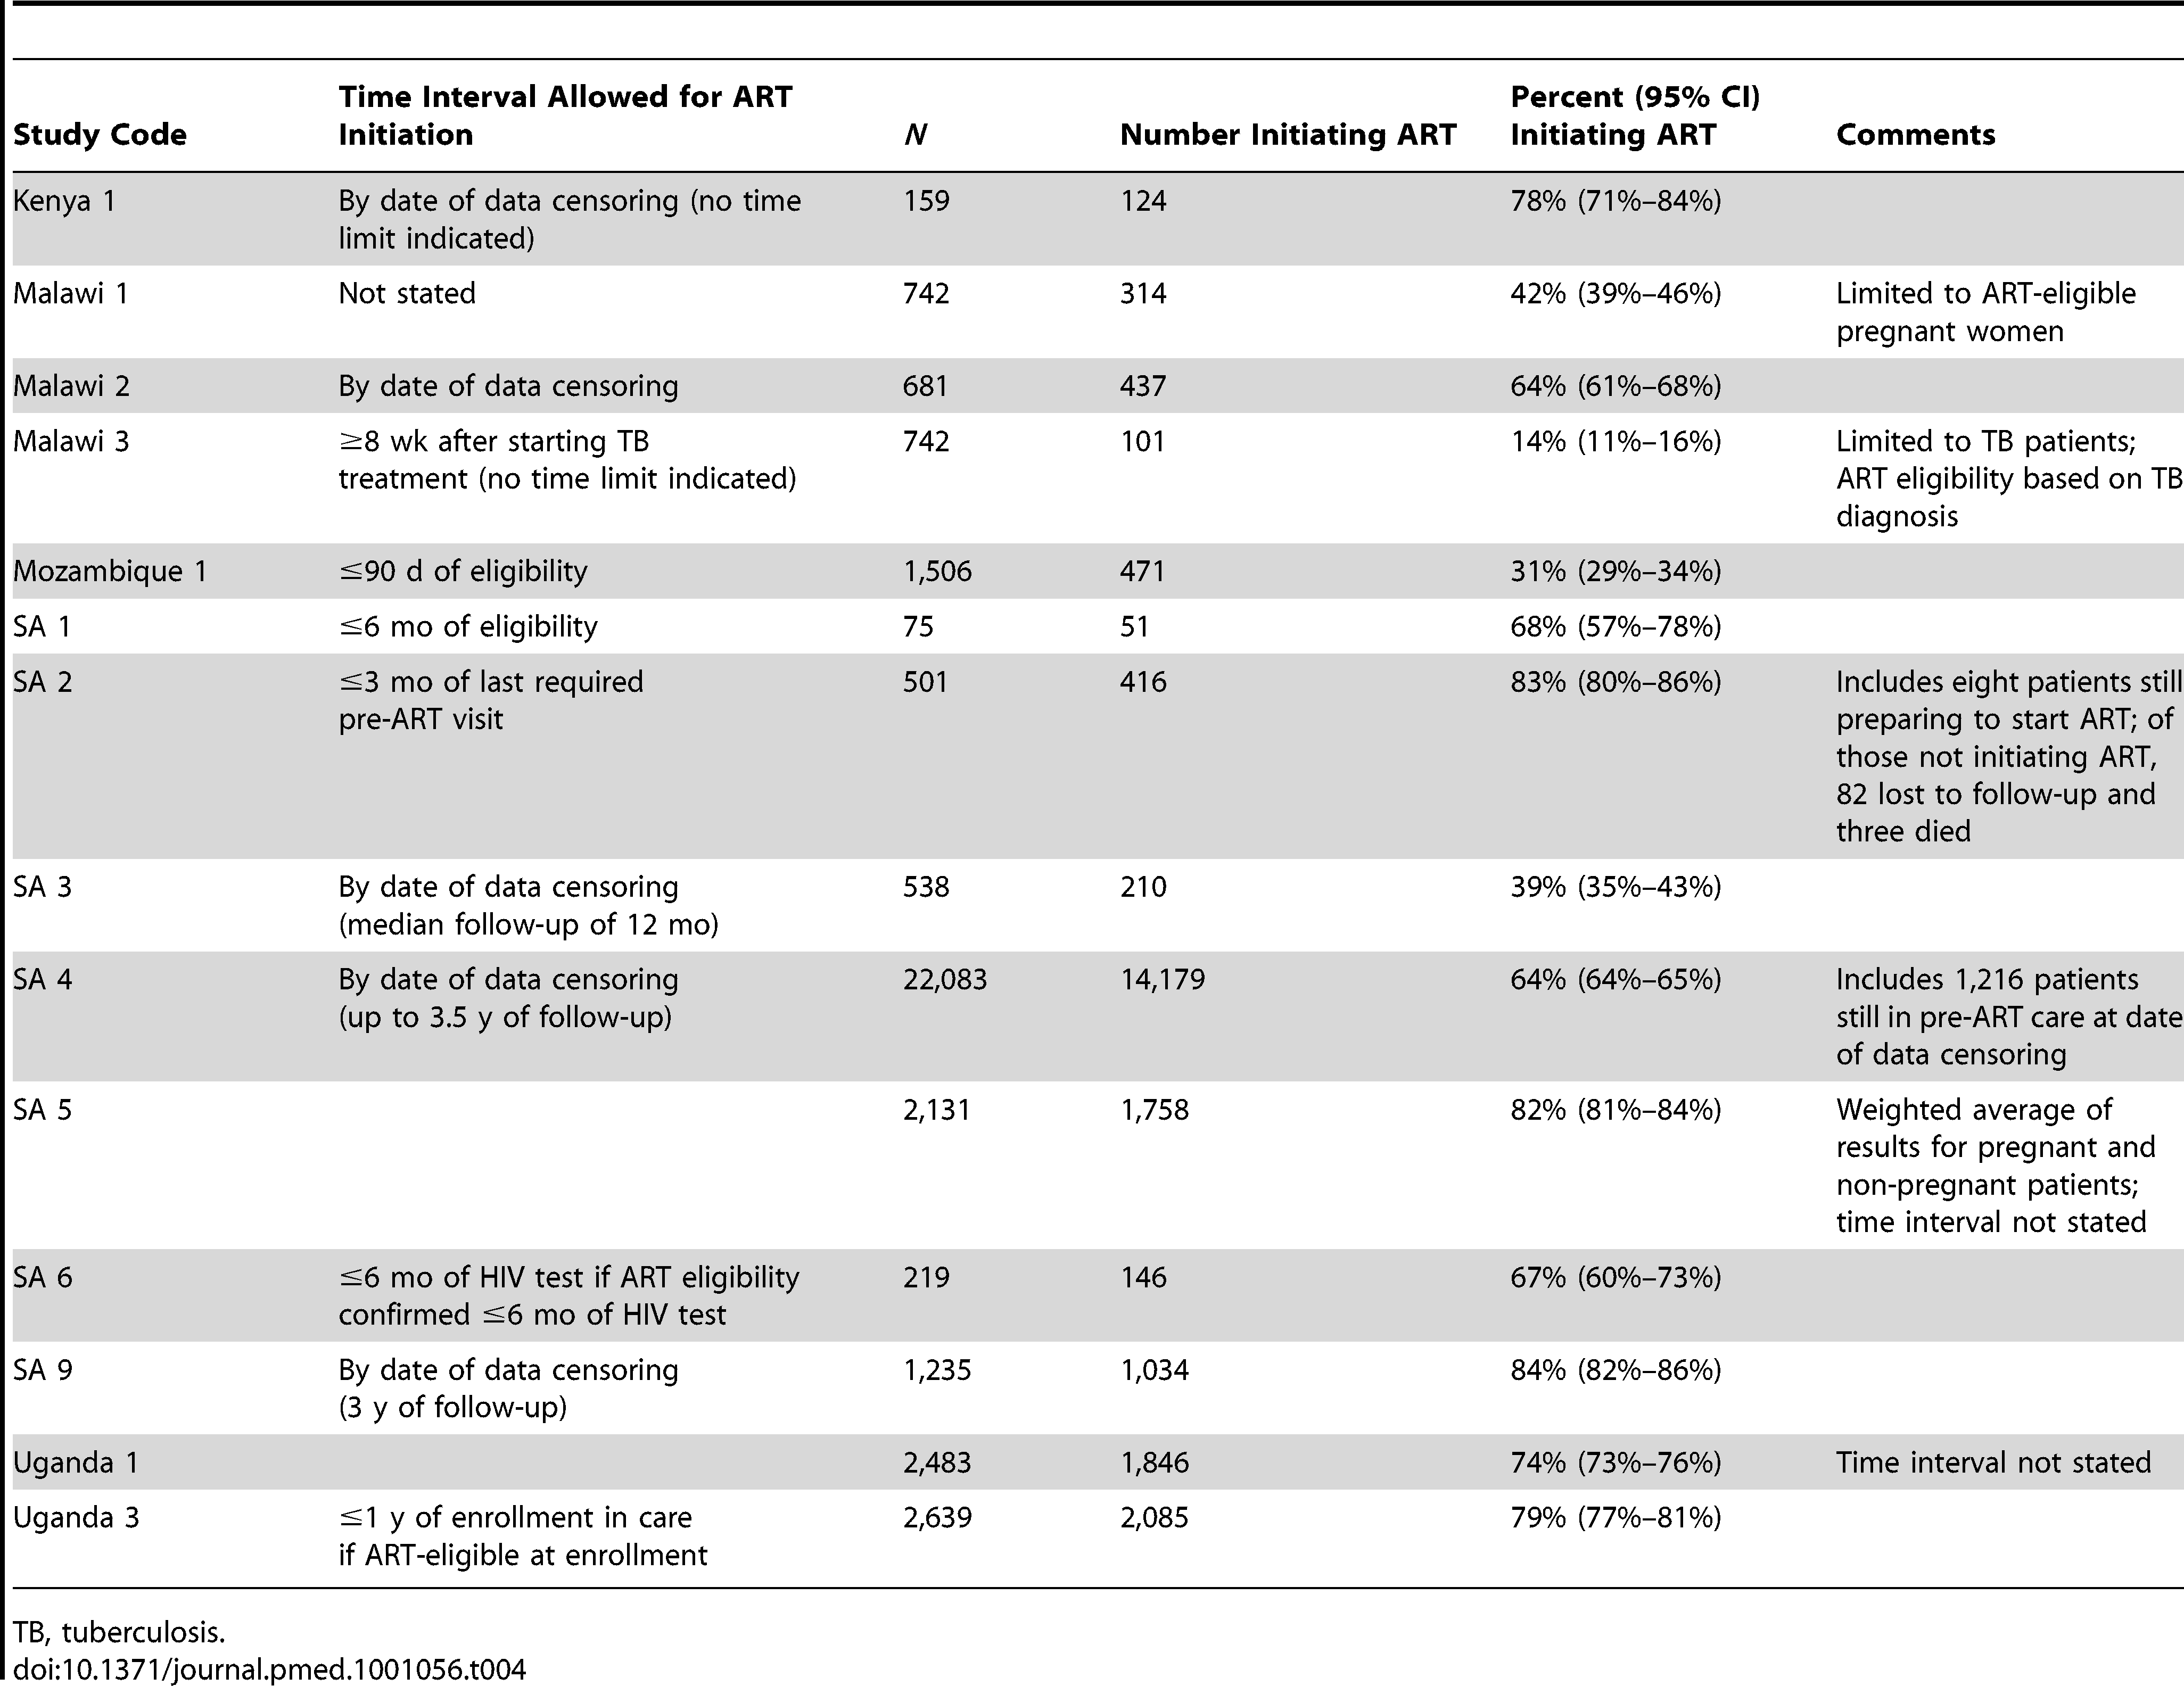 Reported rates of retention or linkage in Stage 3 (ART eligibility to ART initiation).